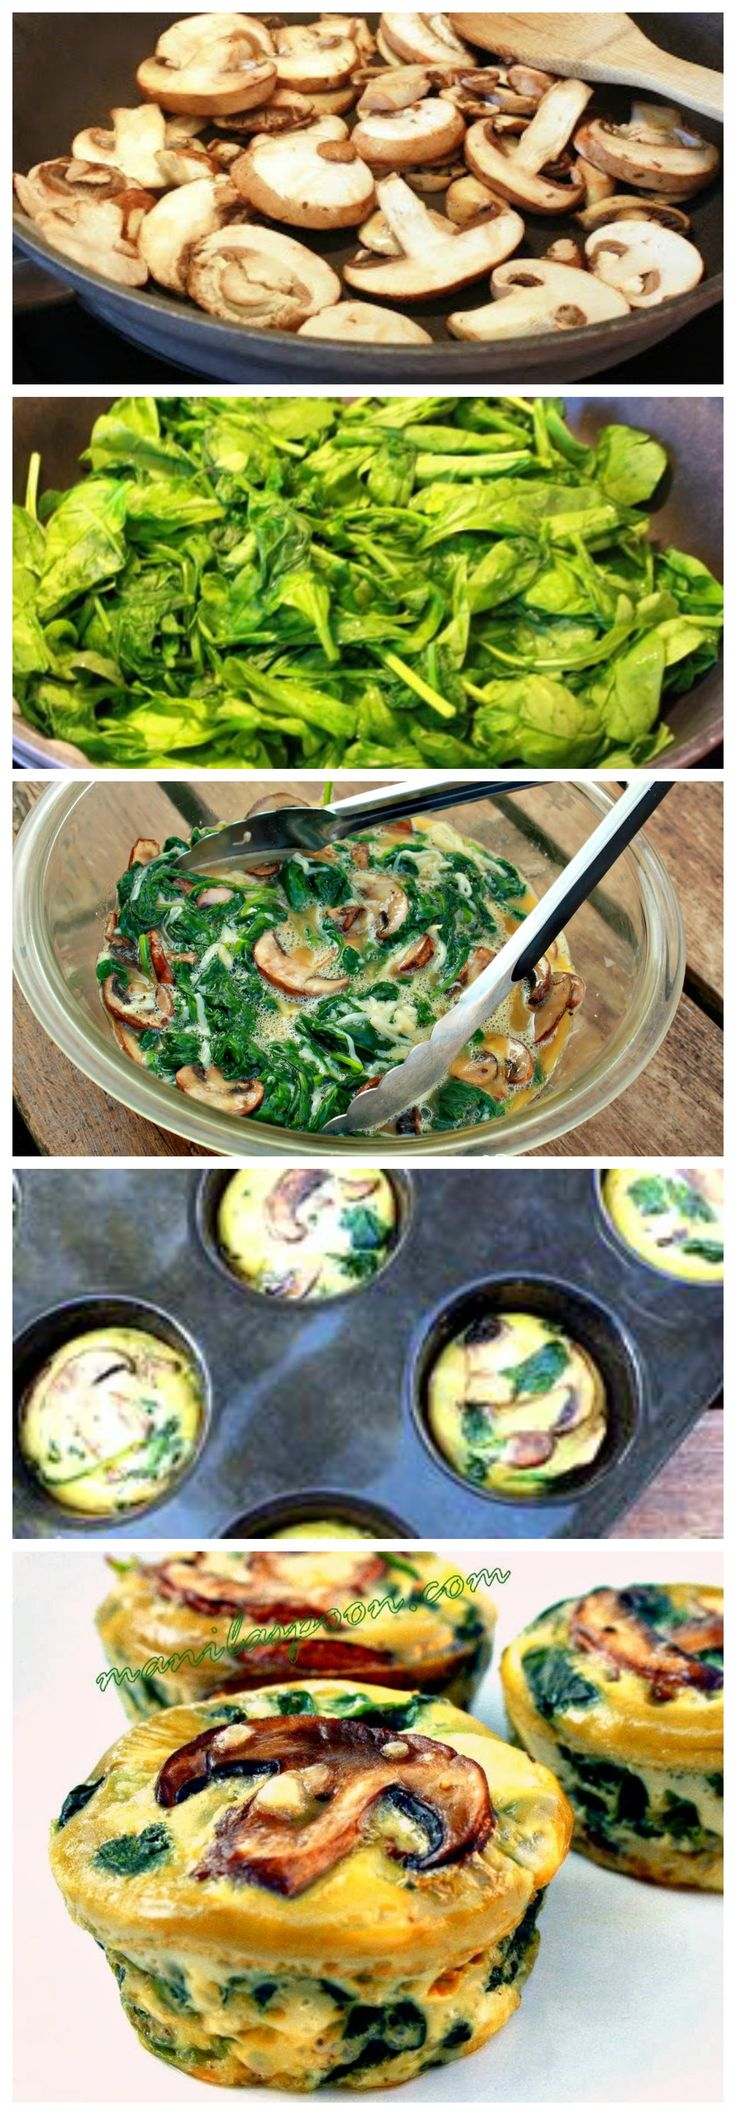 All Food and Drink: Spinach Quiche Cups